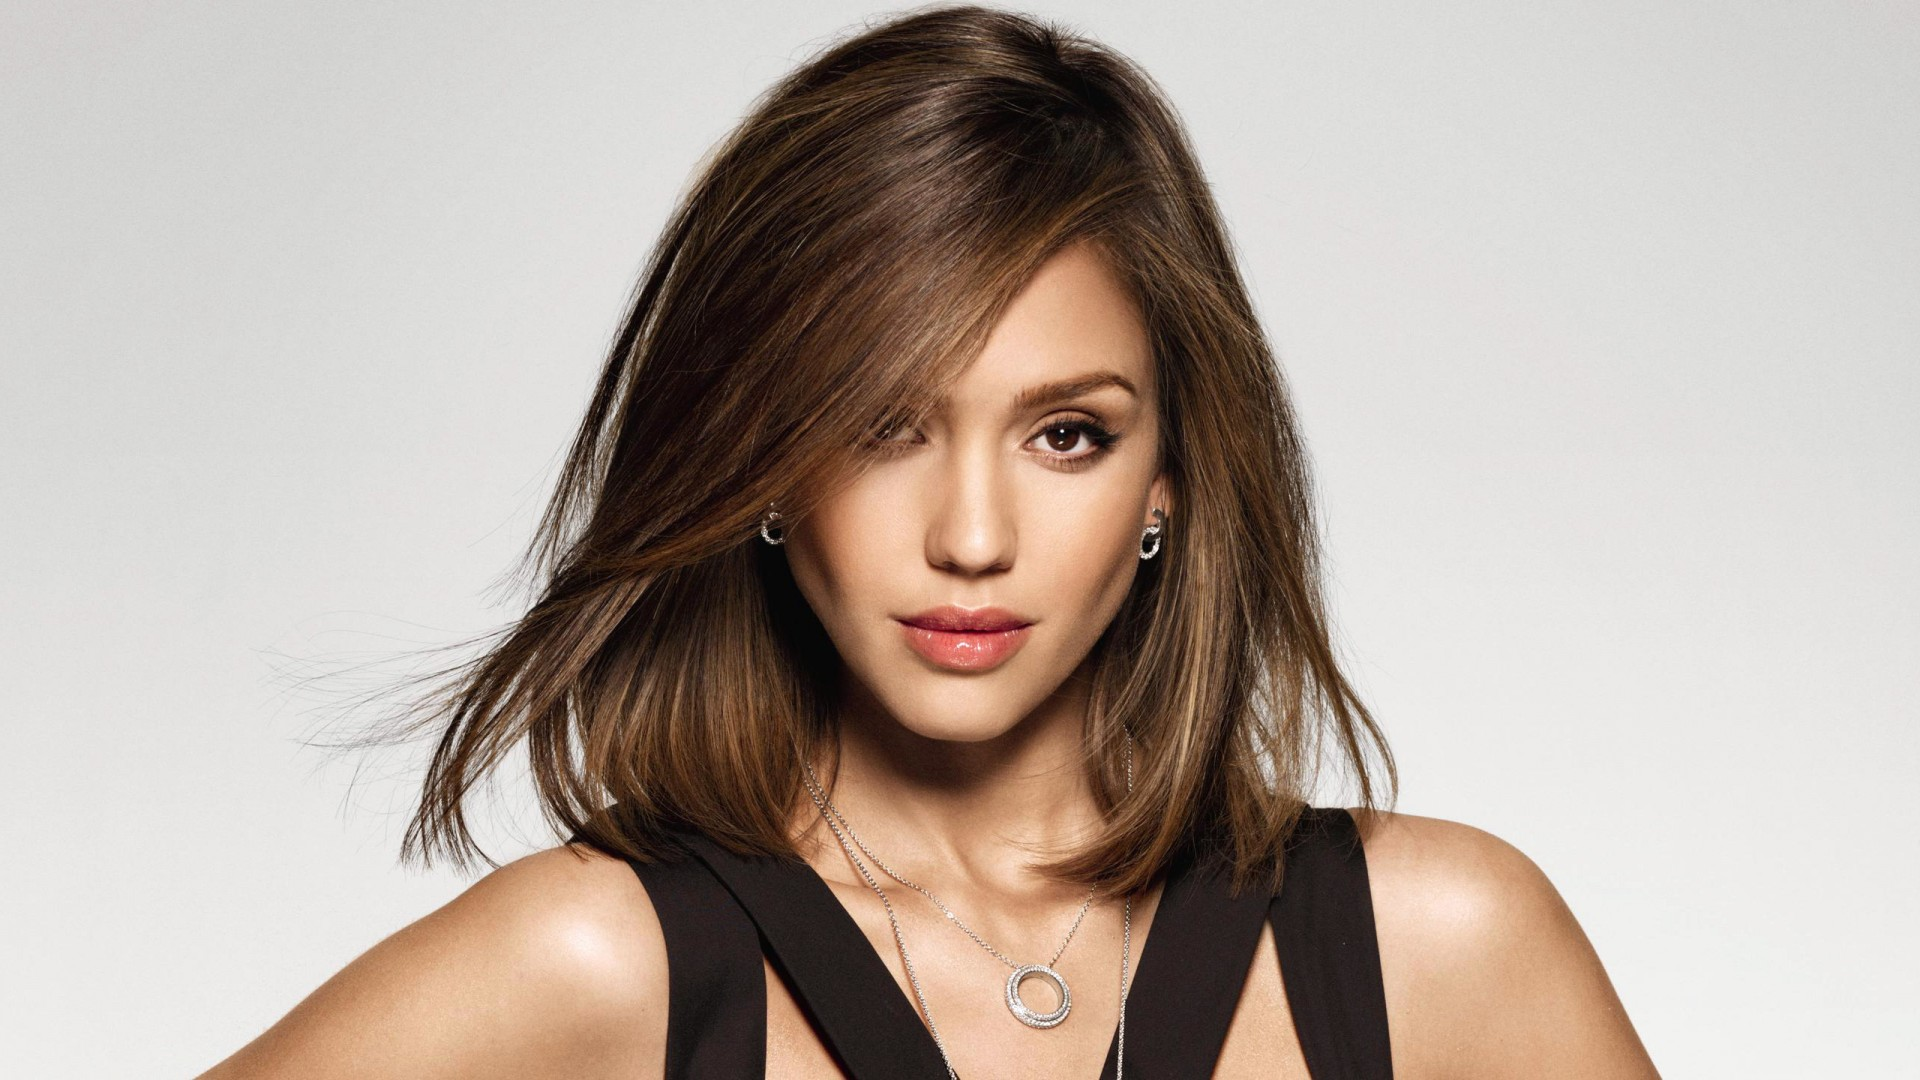 3d Wallpaper Download For Windows 10 Jessica Alba 2016 Wallpapers Hd Wallpapers Id 17406